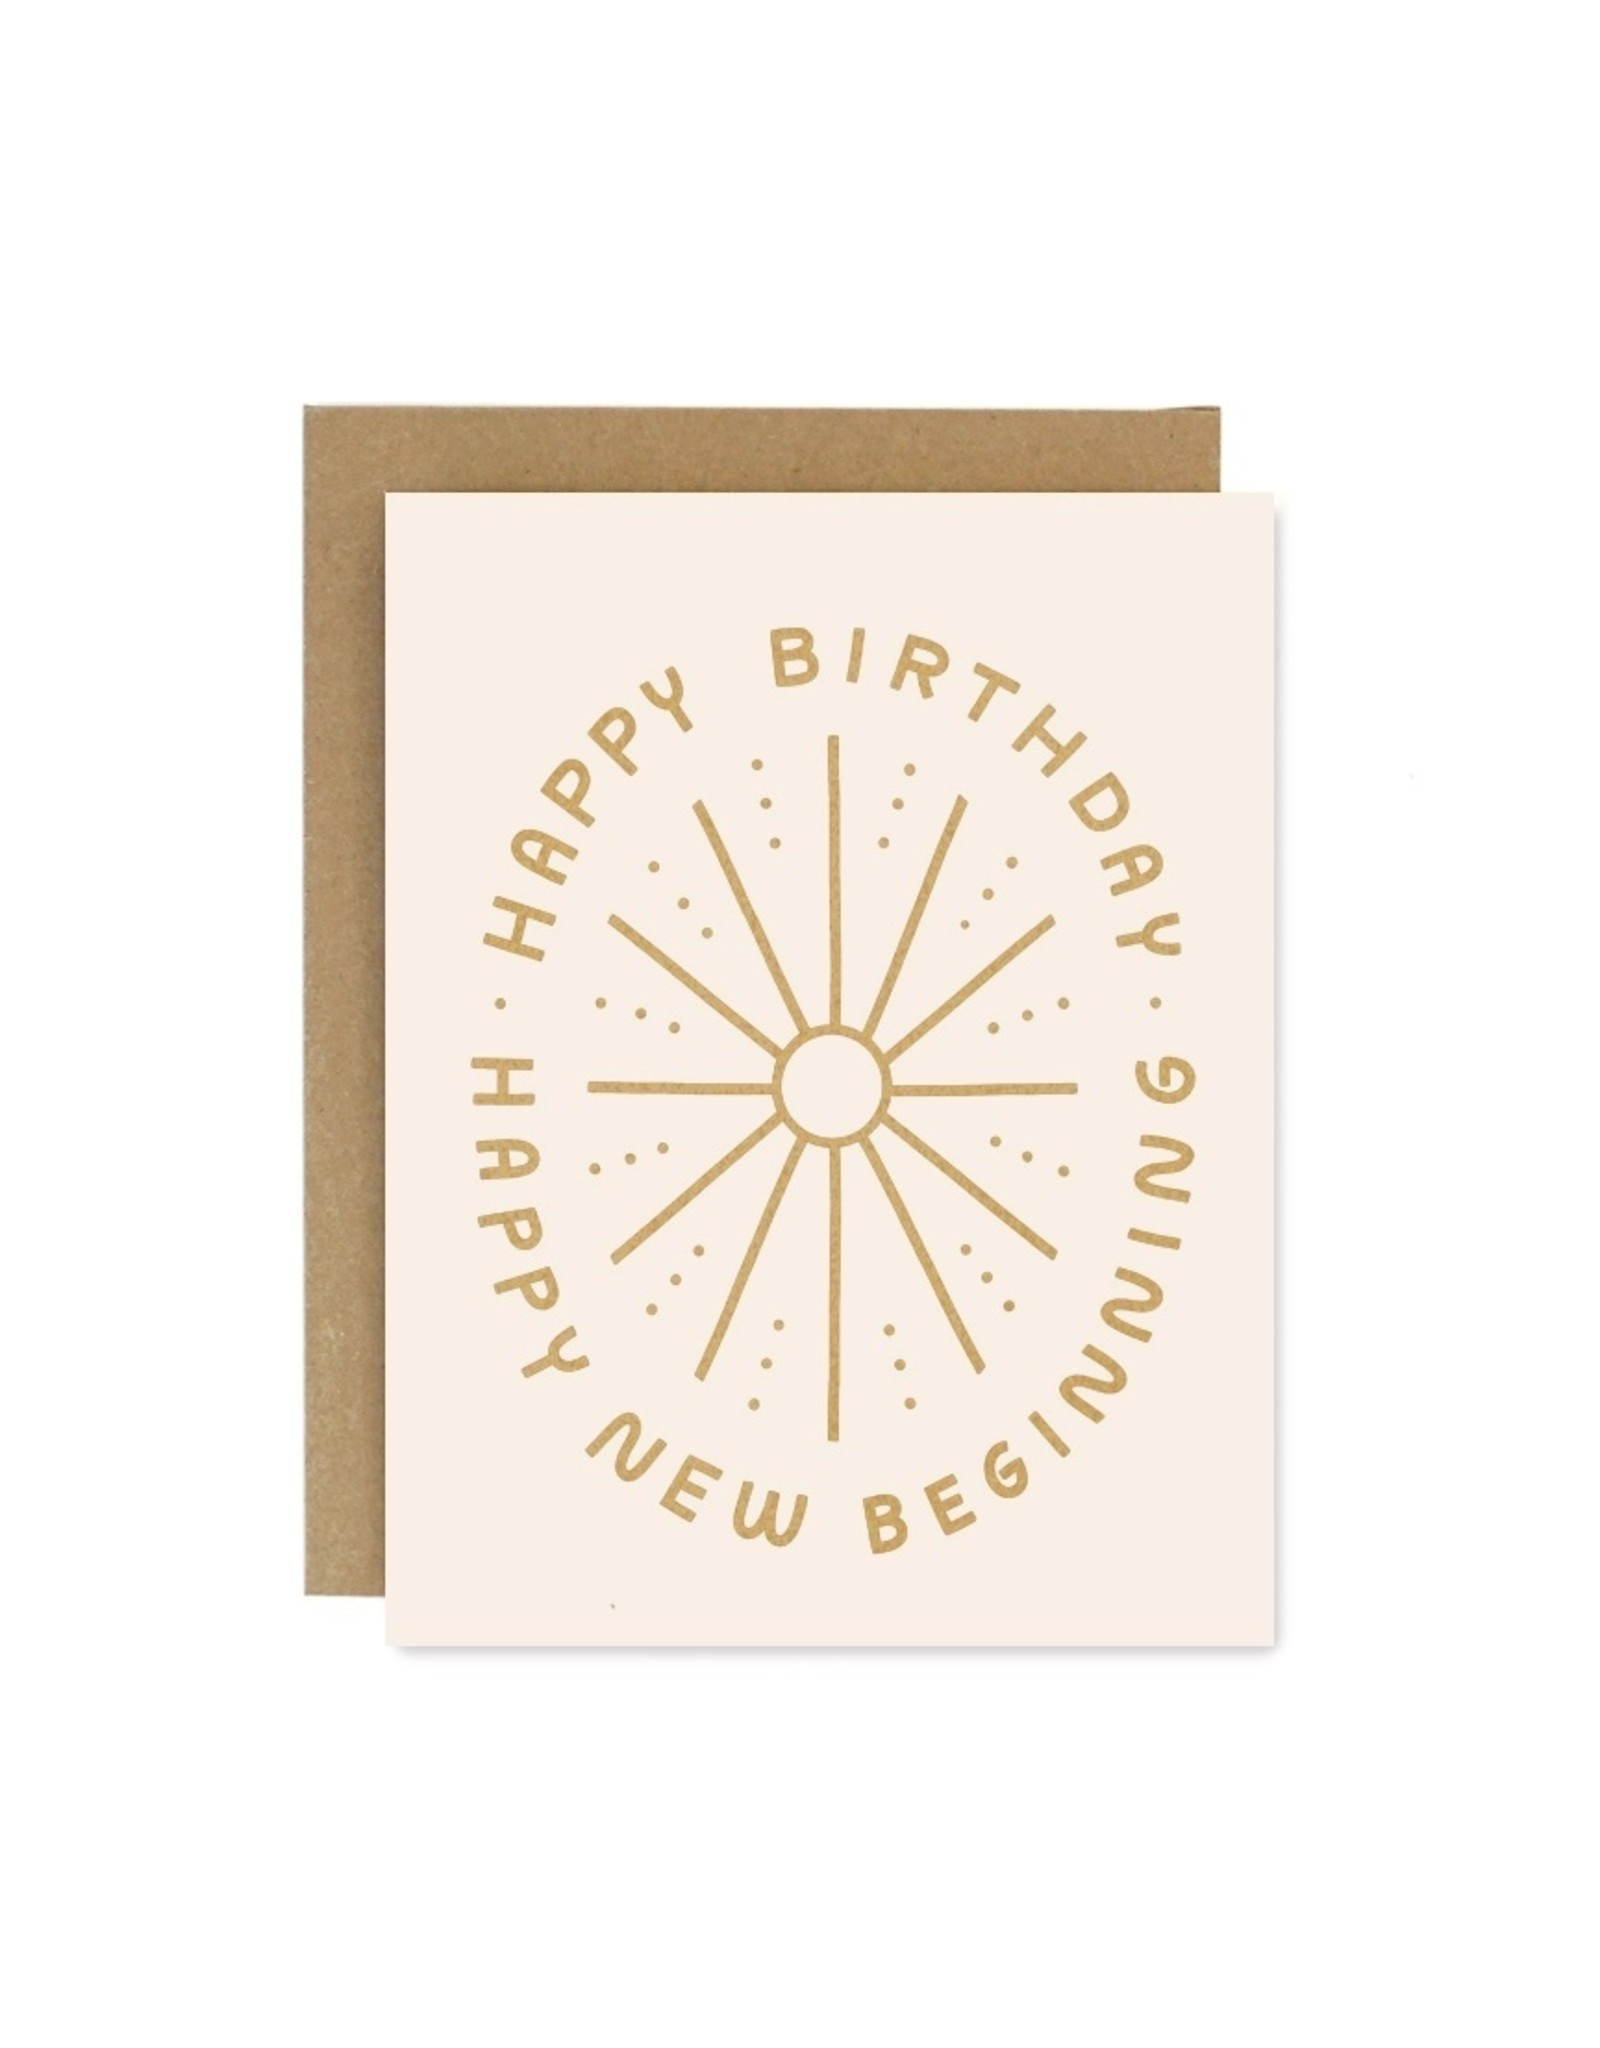 Worthwhile Paper Birthday New Beginnings Card